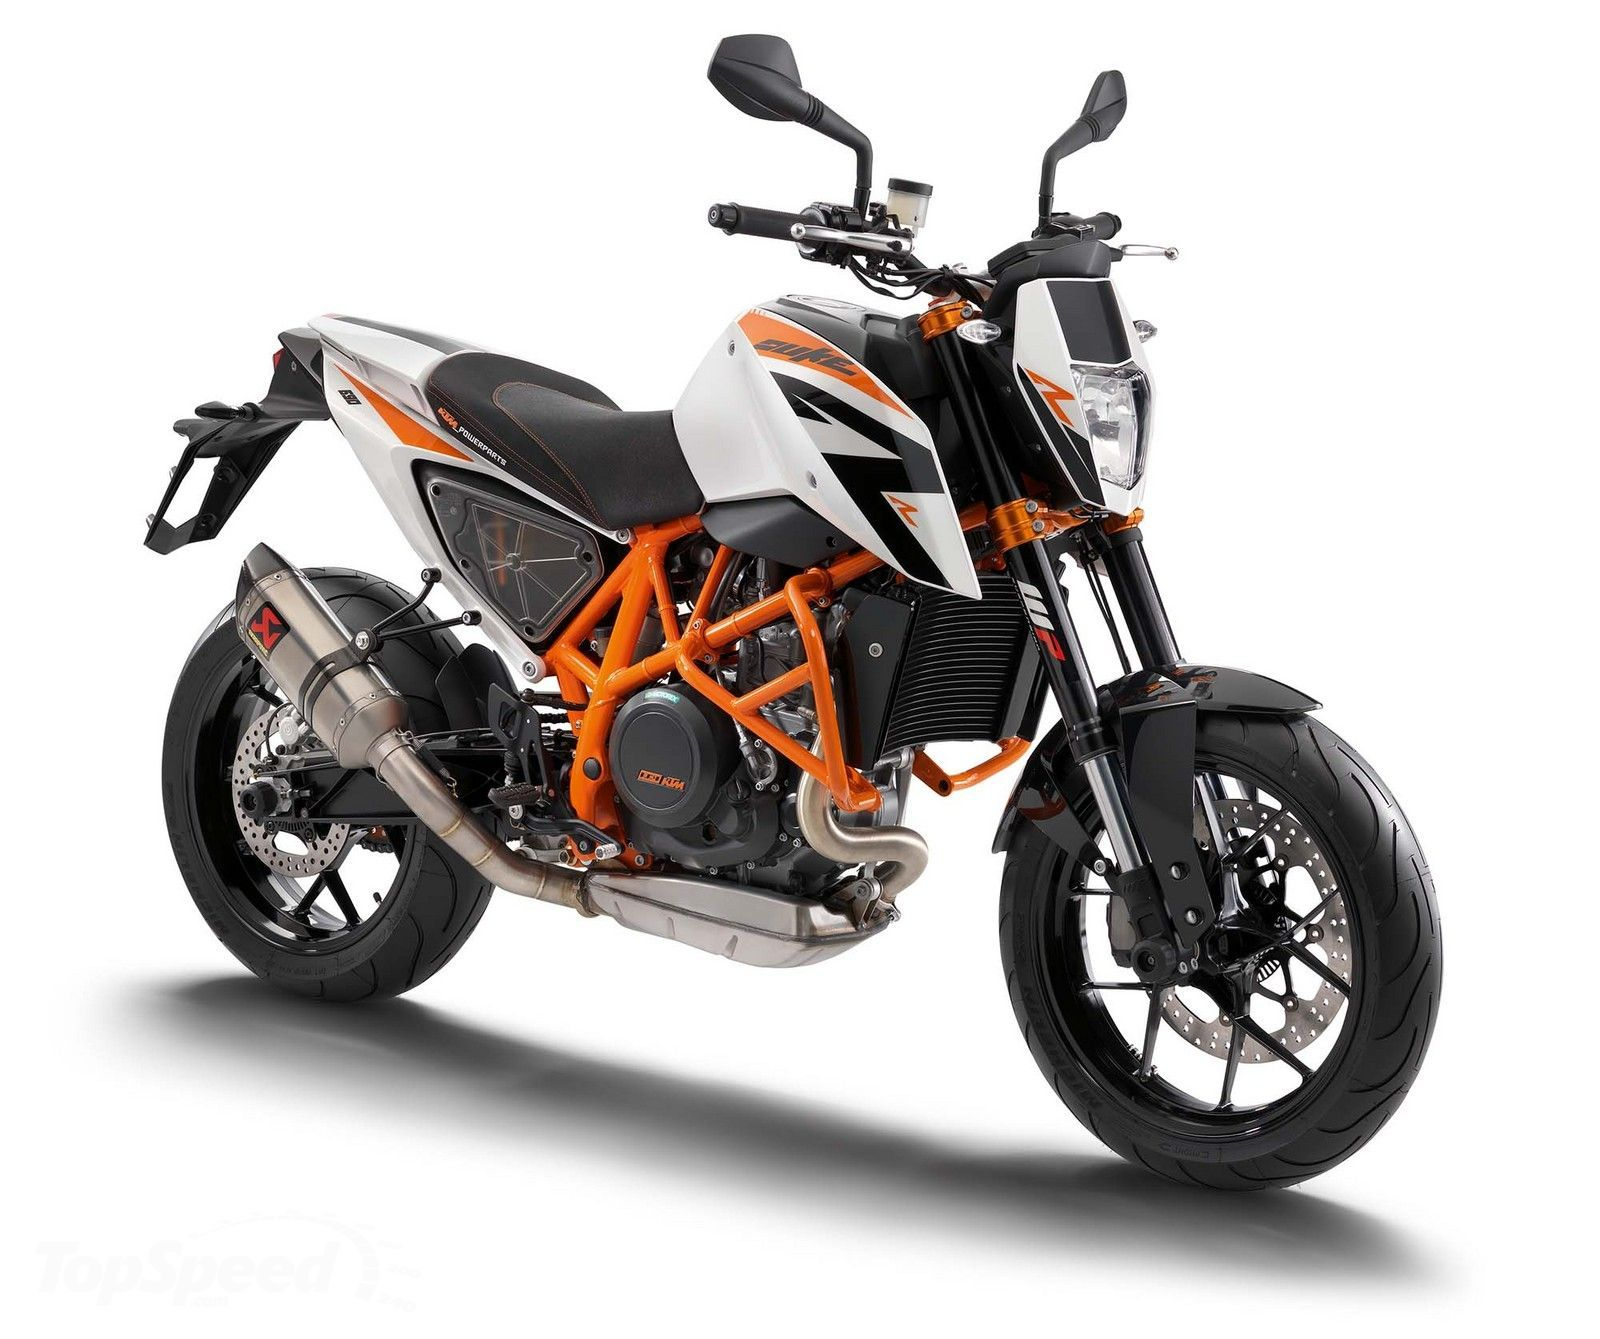 Bikes Rate Of India KTM Duke Bike